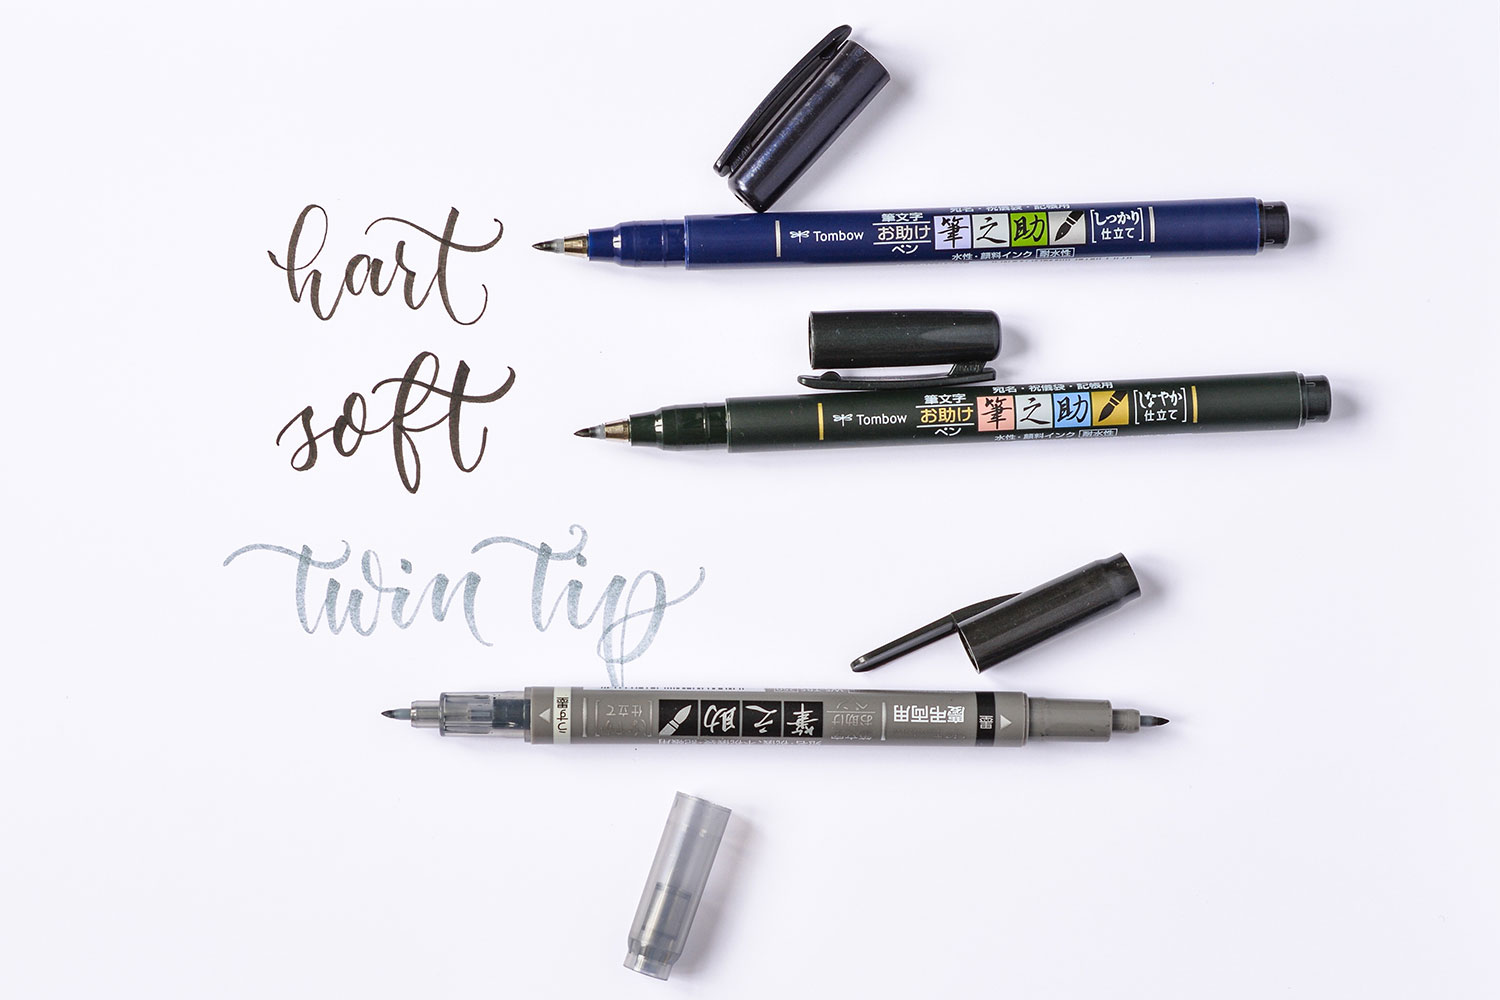 Tombow Fudenosuke hard, soft und twin tip